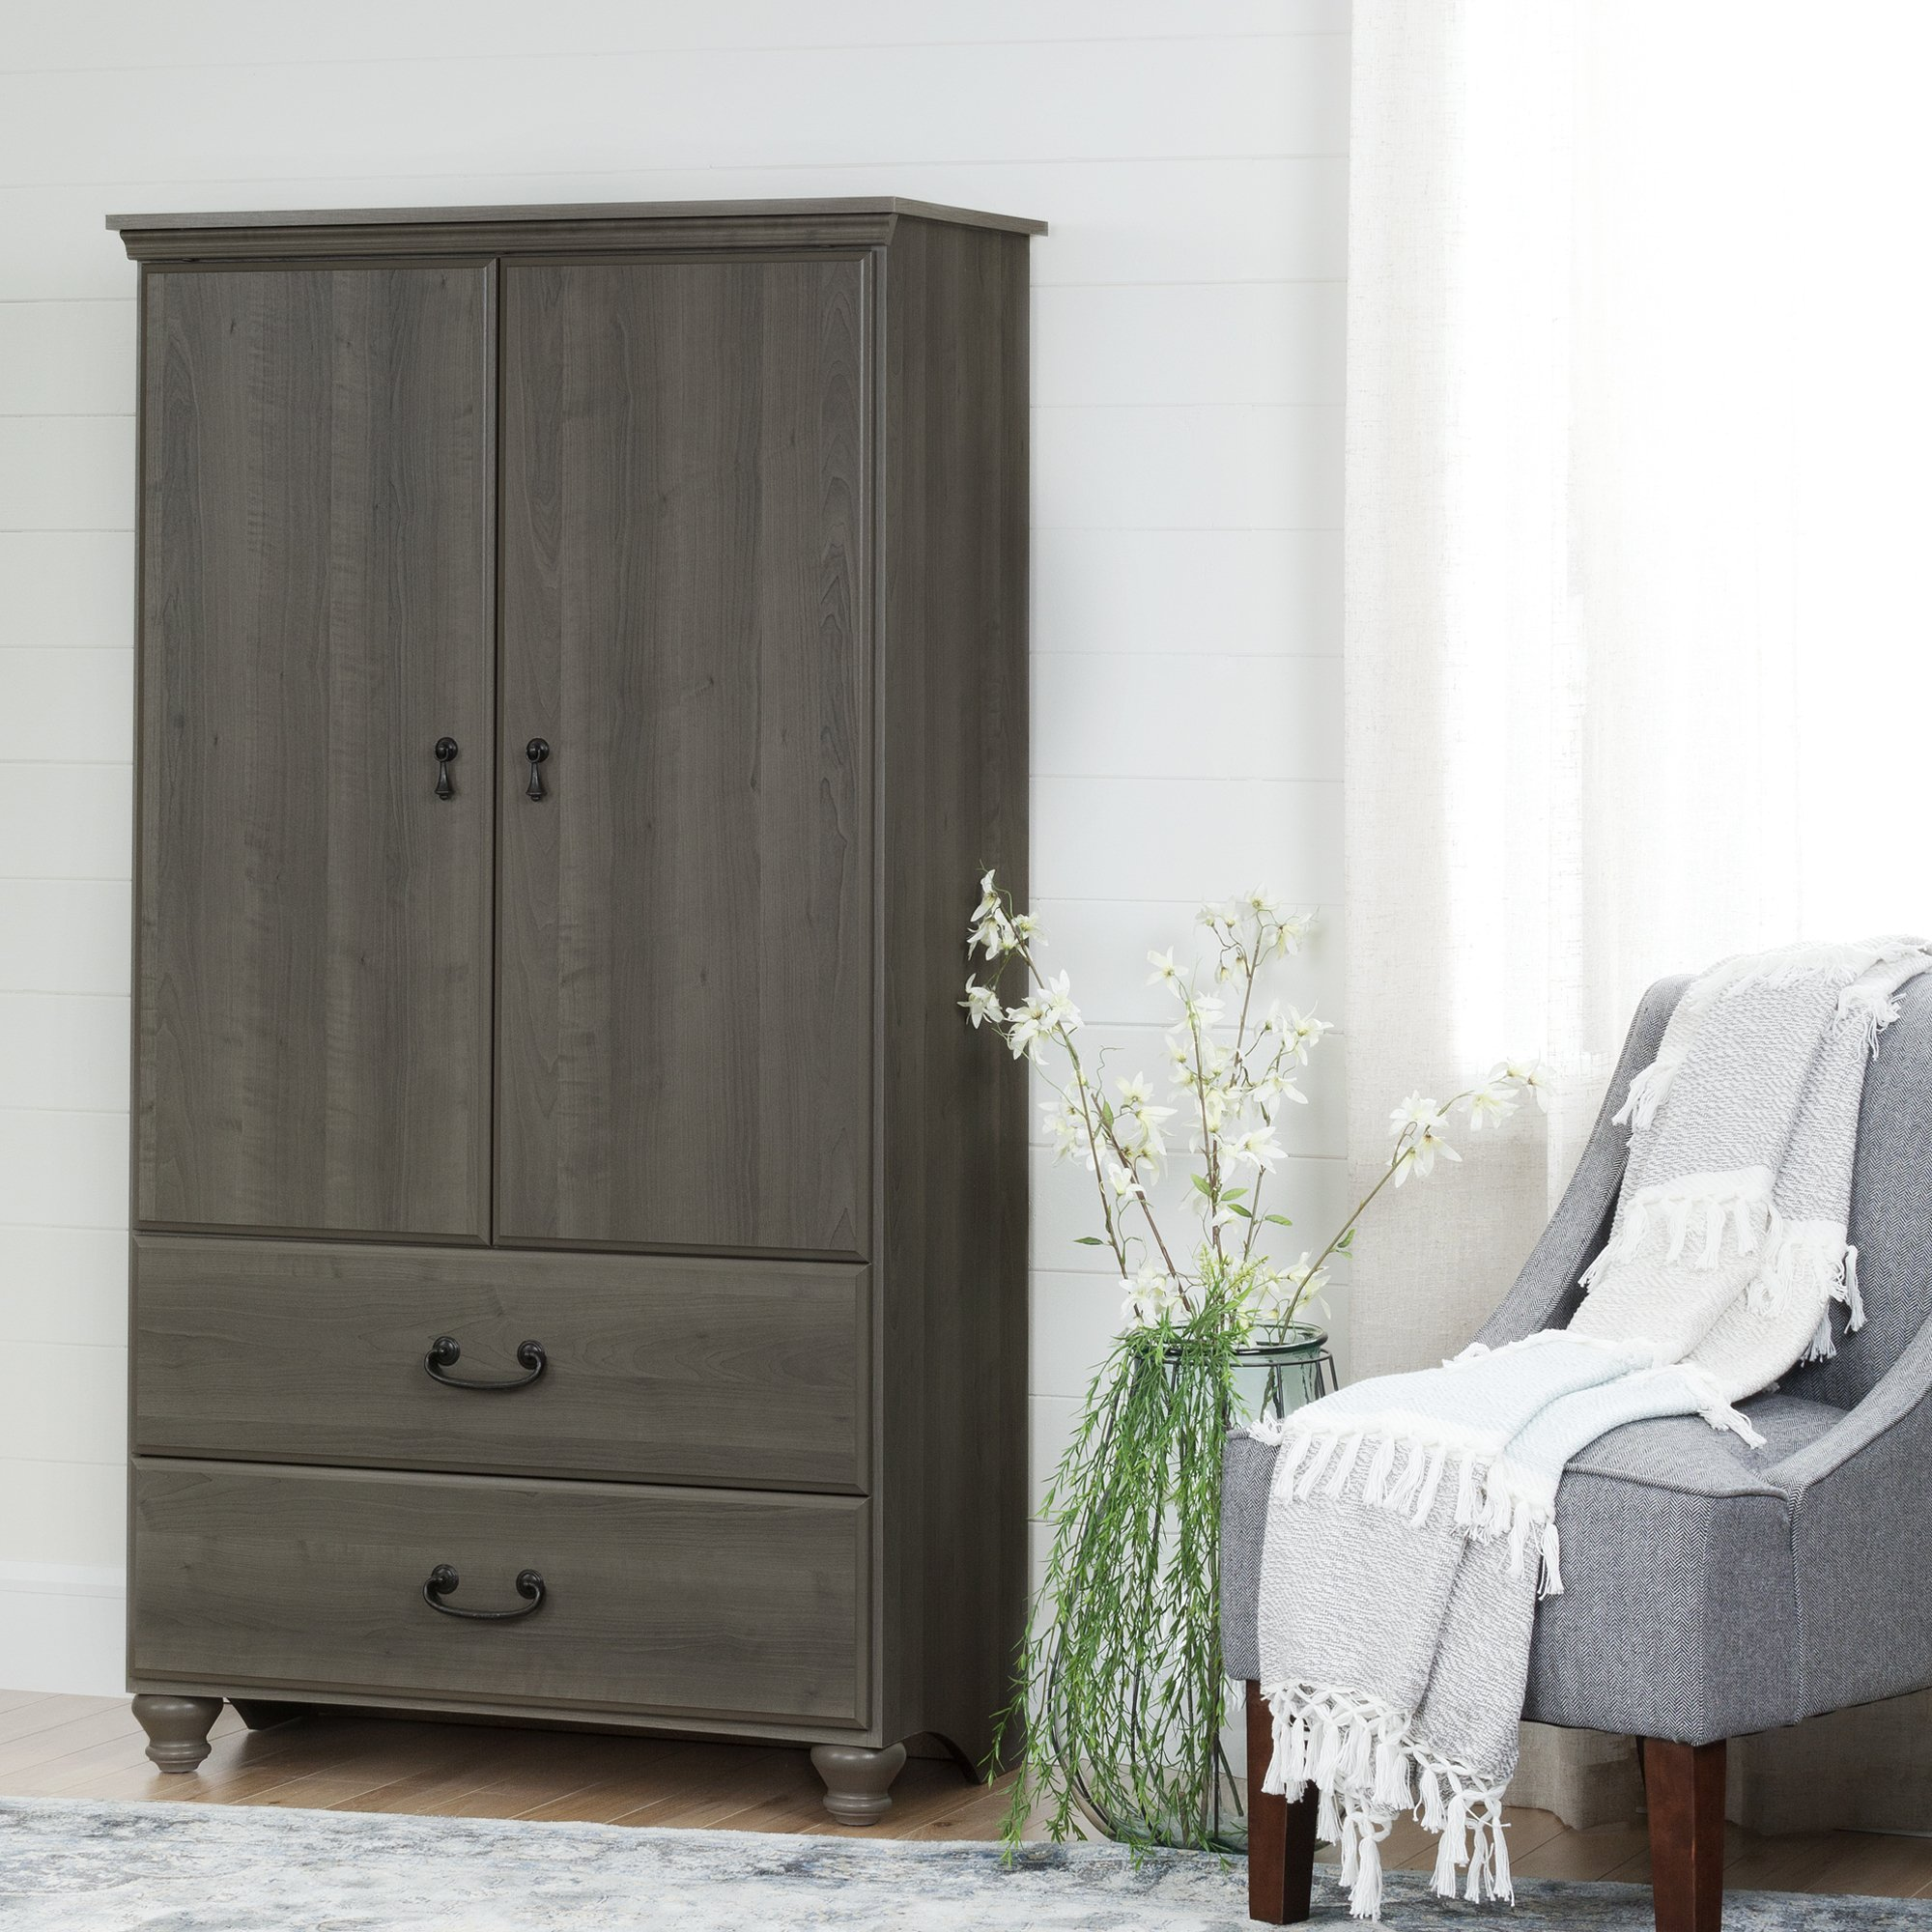 South Shore 2-Door Armoire with Adjustable Shelves and Storage Drawers, Gray Maple by South Shore